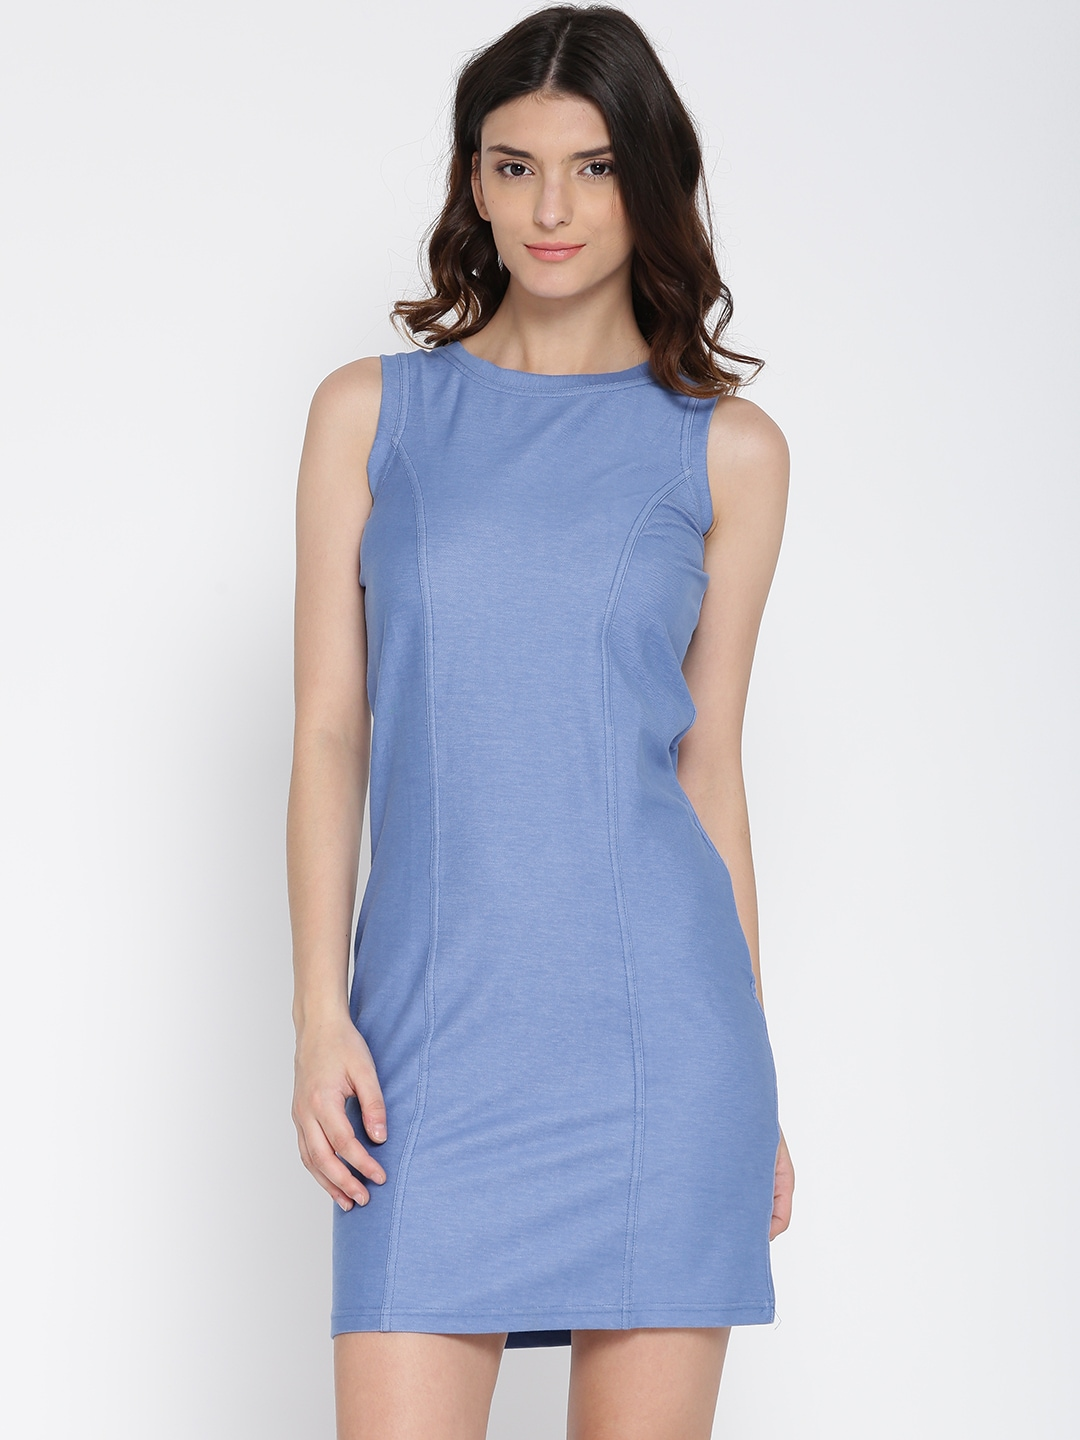 AND by Anita Dongre Blue Sheath Dress image